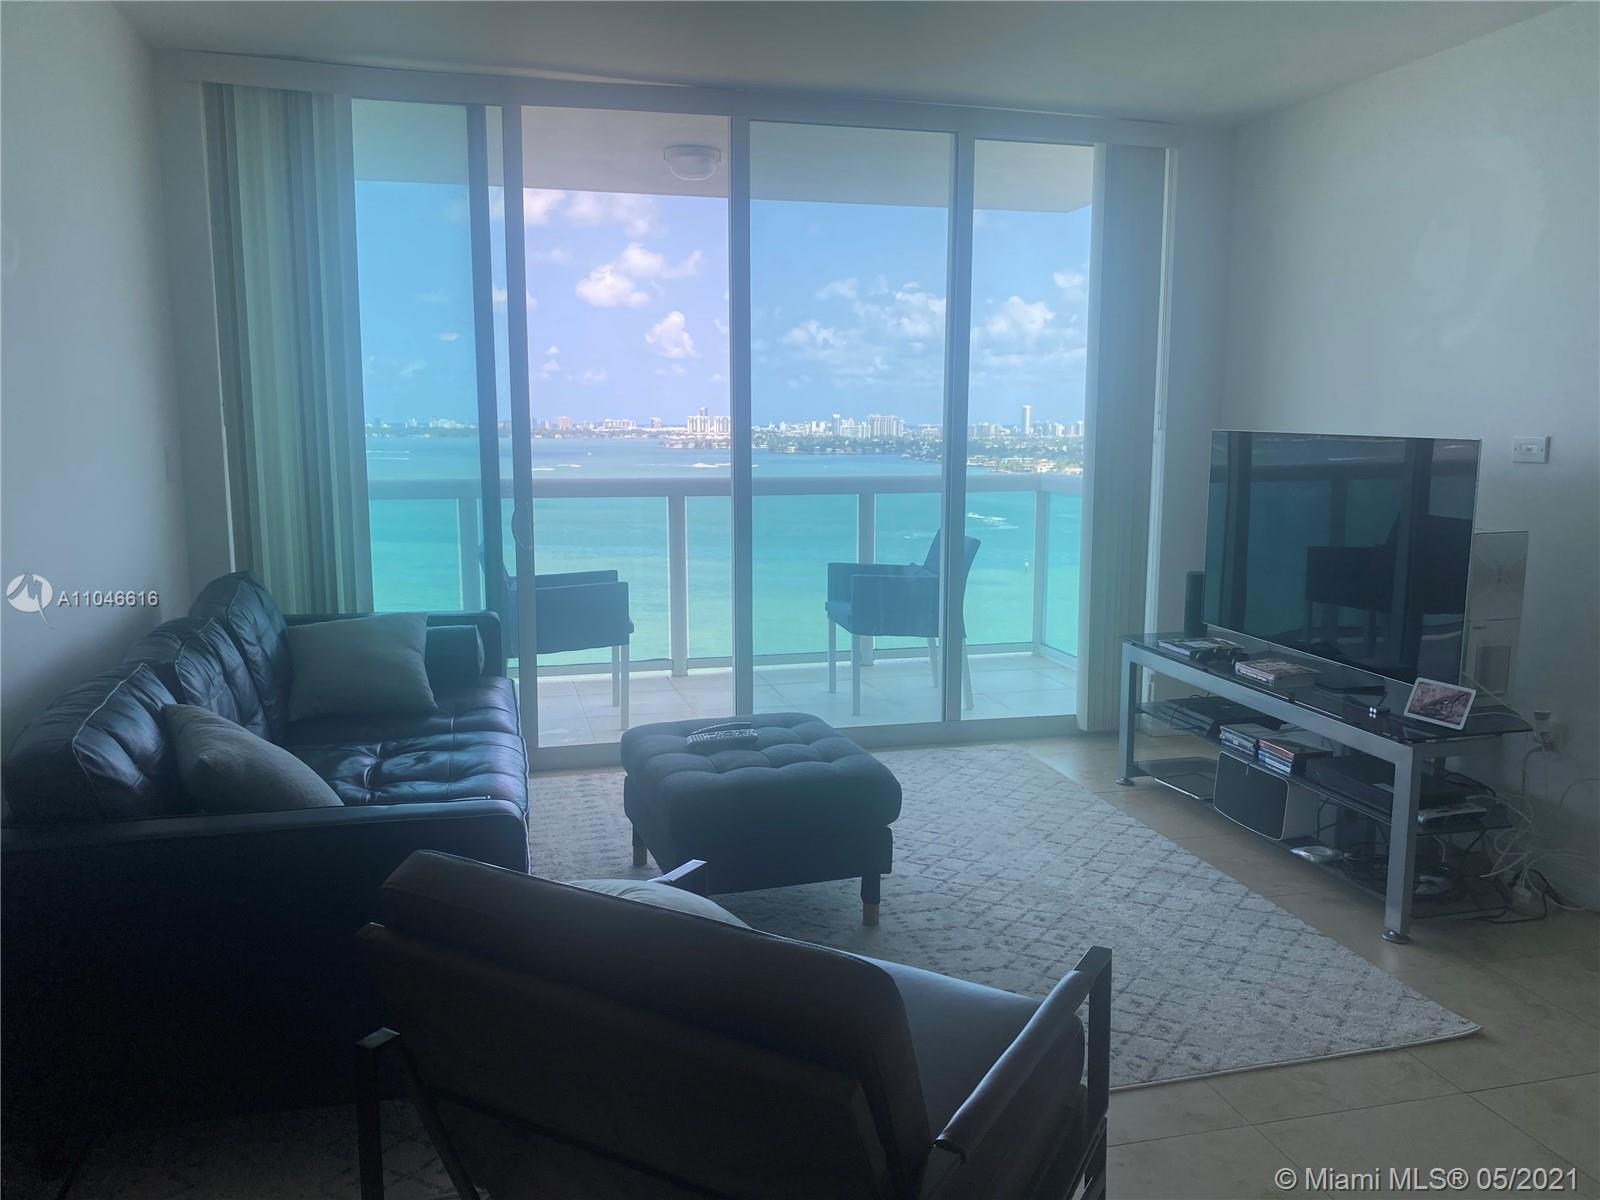 Bay front luxury building, direct unobstructed east view of the bay, ocean, park and port of Miami. Spacious 2 bedroom 2 bath convenient split plan and a view from every window. Includes wood cabinets & stainless steel appliances. Unit comes with a storage area. Washer and dryer in the unit. Pool, spa and gym. Great location, close to the beaches, downtown and airport.